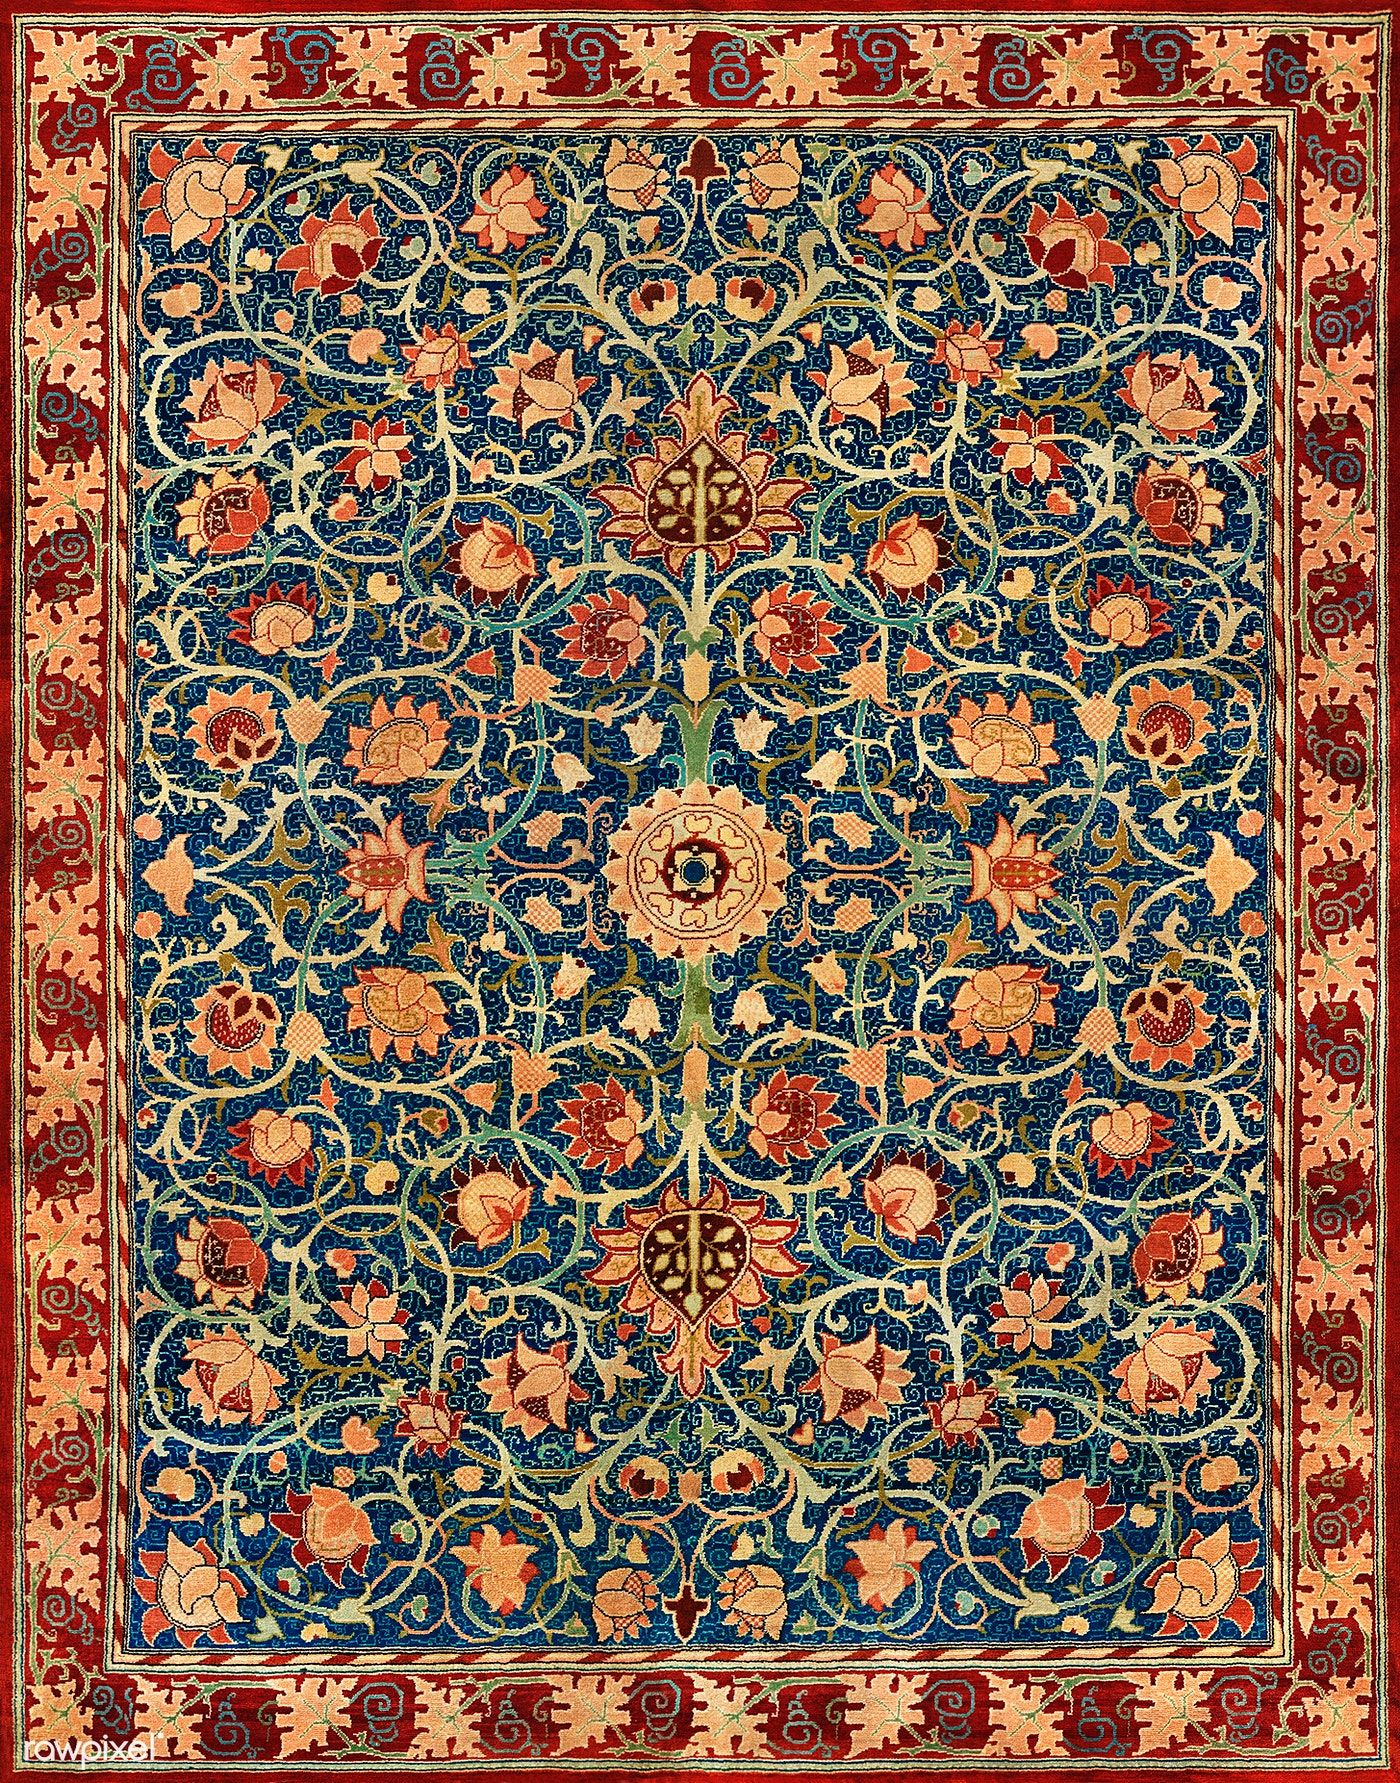 Holland Park Carpet By William Morris 1834 1896 Original From The Met Museum Digitally Enhanced By Rawpix In 2020 William Morris William Morris Designs Holland Park